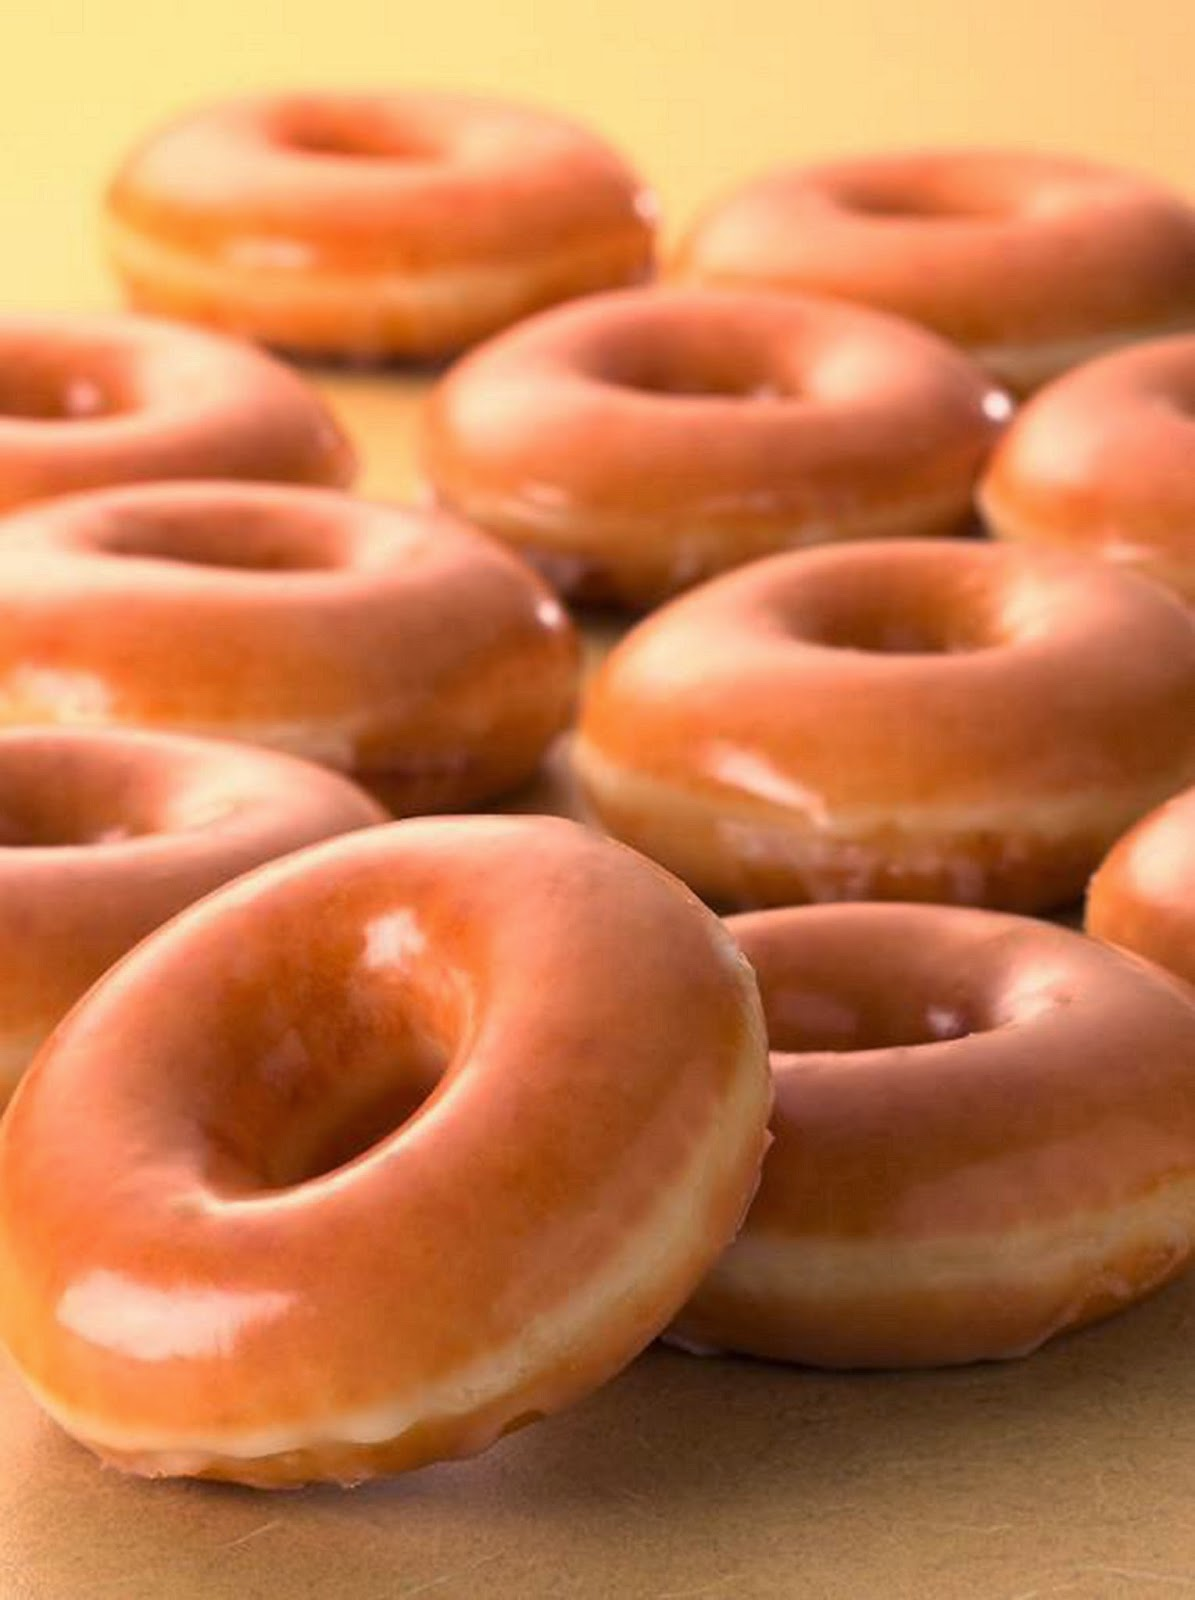 ... to a complimentary dozen original glazed doughnuts in exchange for a